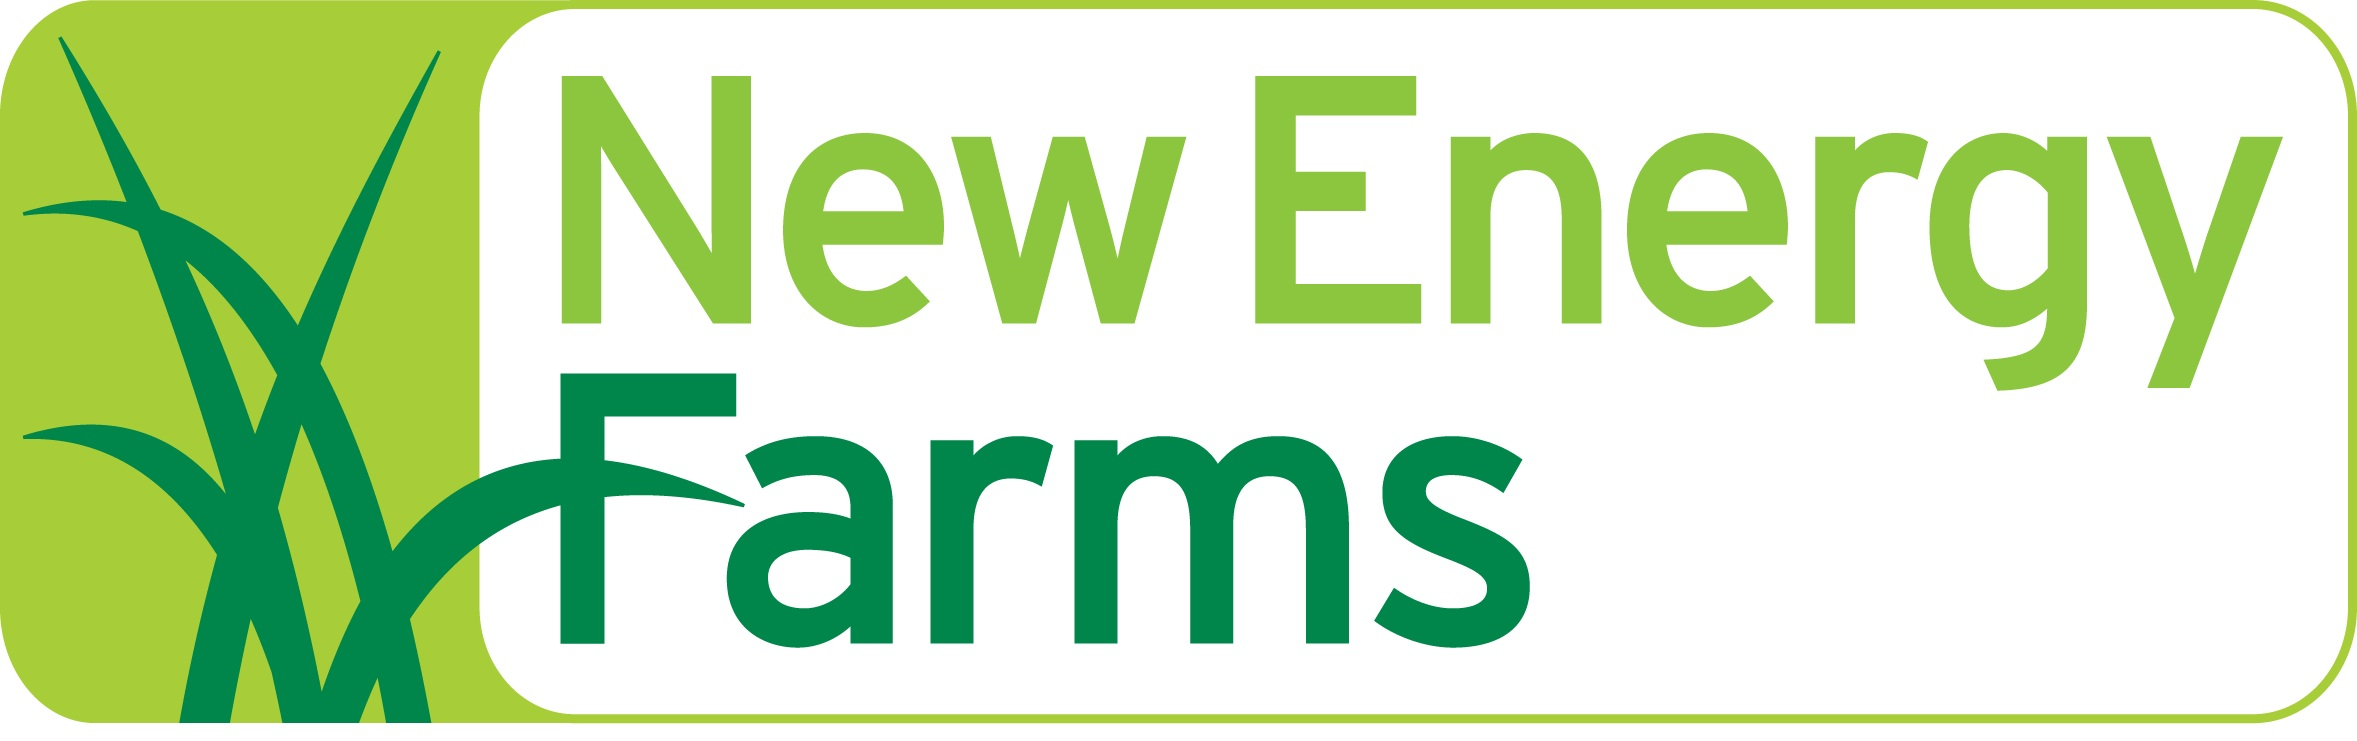 New Energy Farms logo